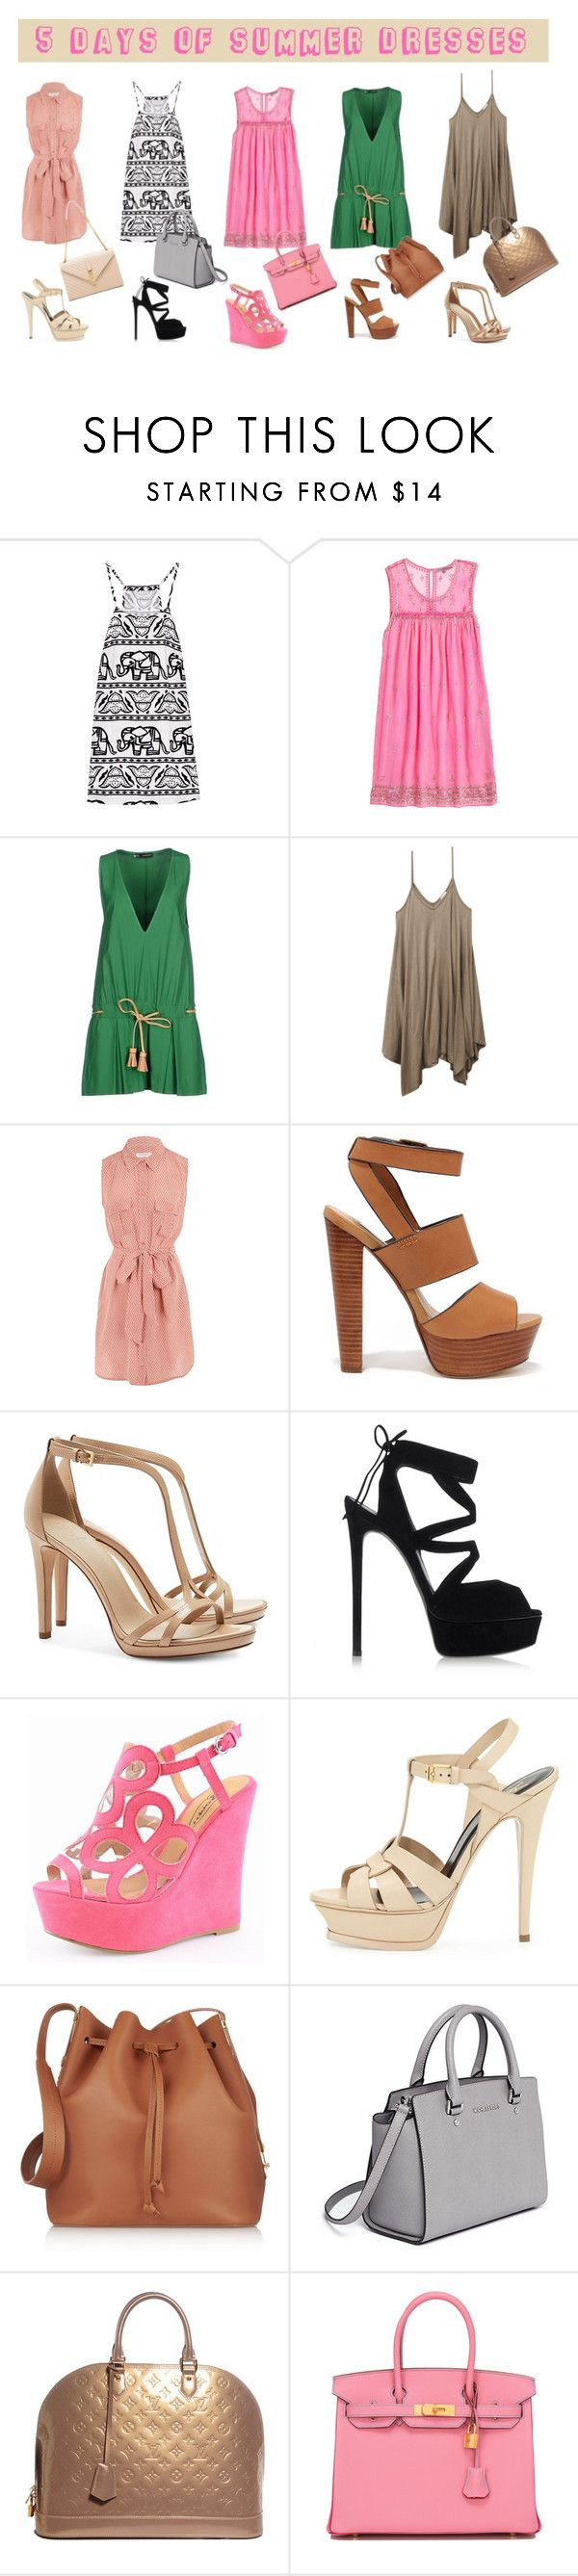 """""""5 Days of Summer Dresses"""" by mara-petcana ❤ liked on Polyvore featuring Calypso St. Barth, Dsquared2, Wet Seal, Equipment, Steve Madden, Tory Burch, Casadei, Glamorous, Yves Saint Laurent and Sophie Hulme"""